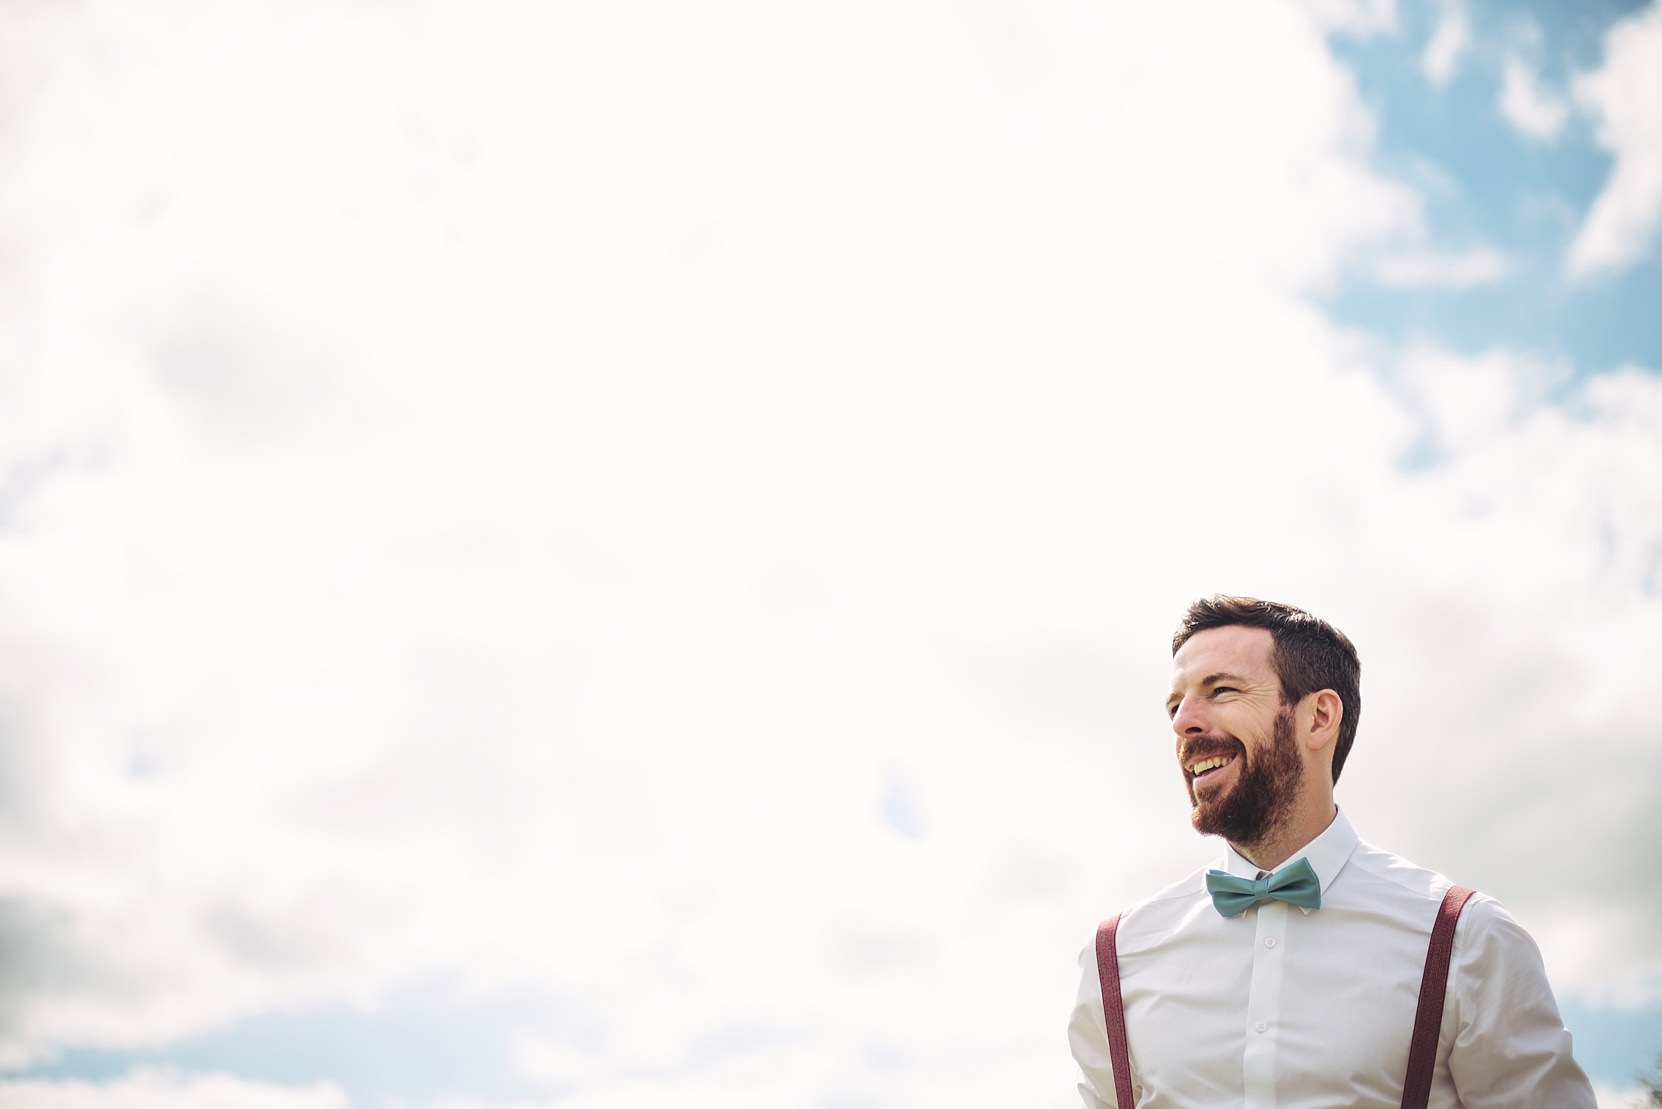 A man a groom at his wedding set against the sky